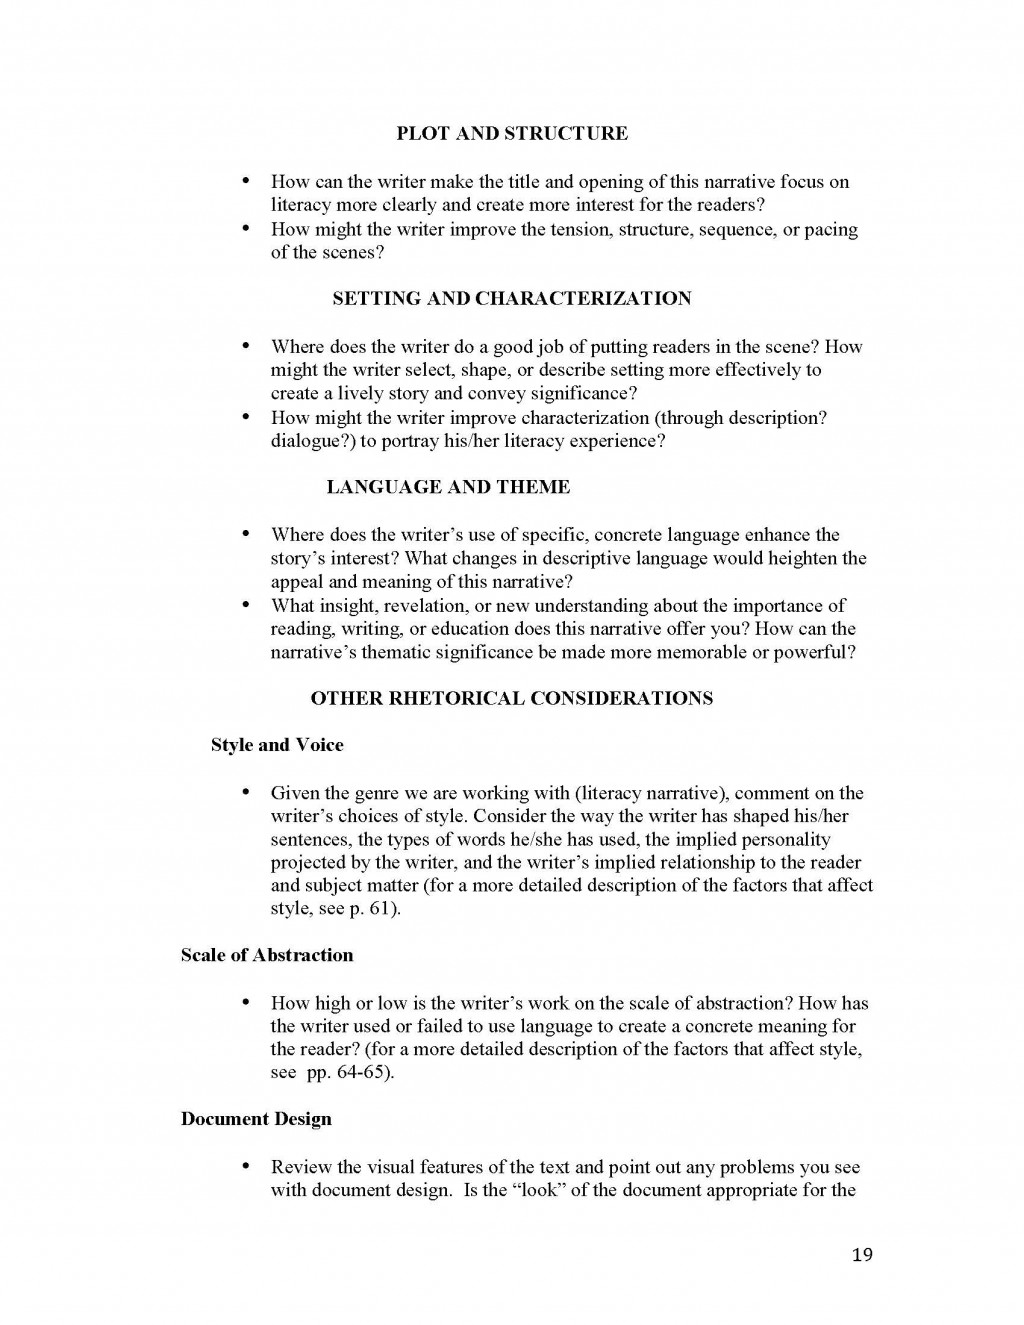 015 Narrative Essay Definition Example Unit 1 Literacy Instructor Copy Page 19 Stunning Literature Meaning Large